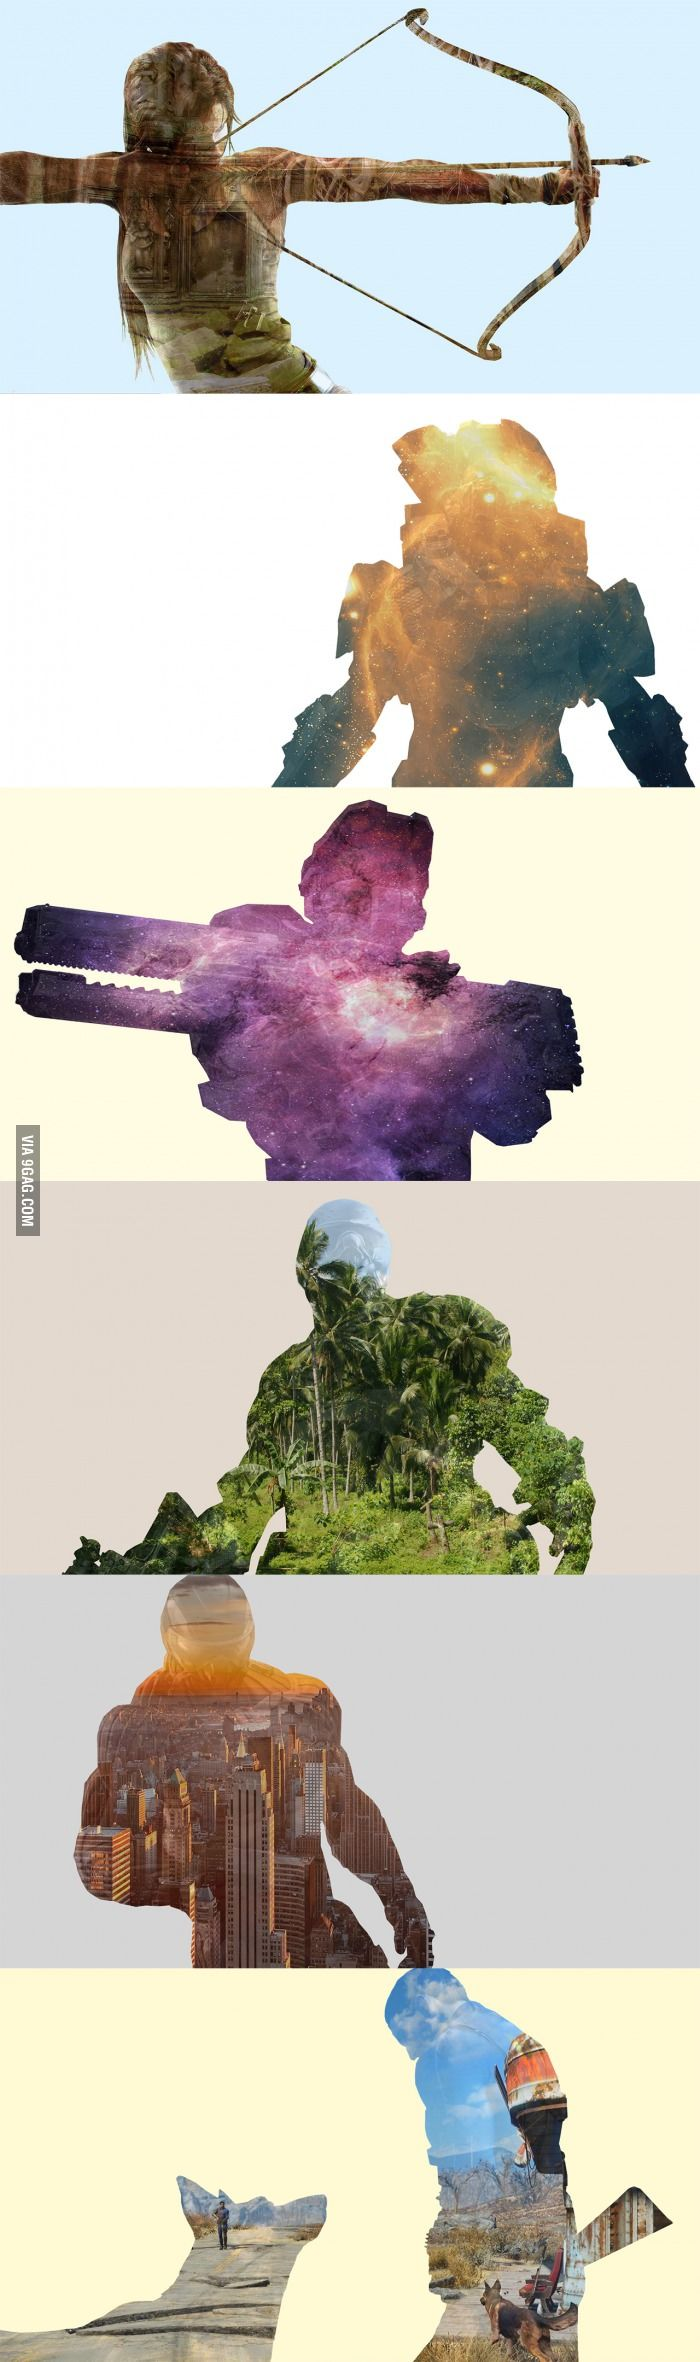 Some double exposure gaming designs I made (write in comments what games you want to see next) - 9GAG